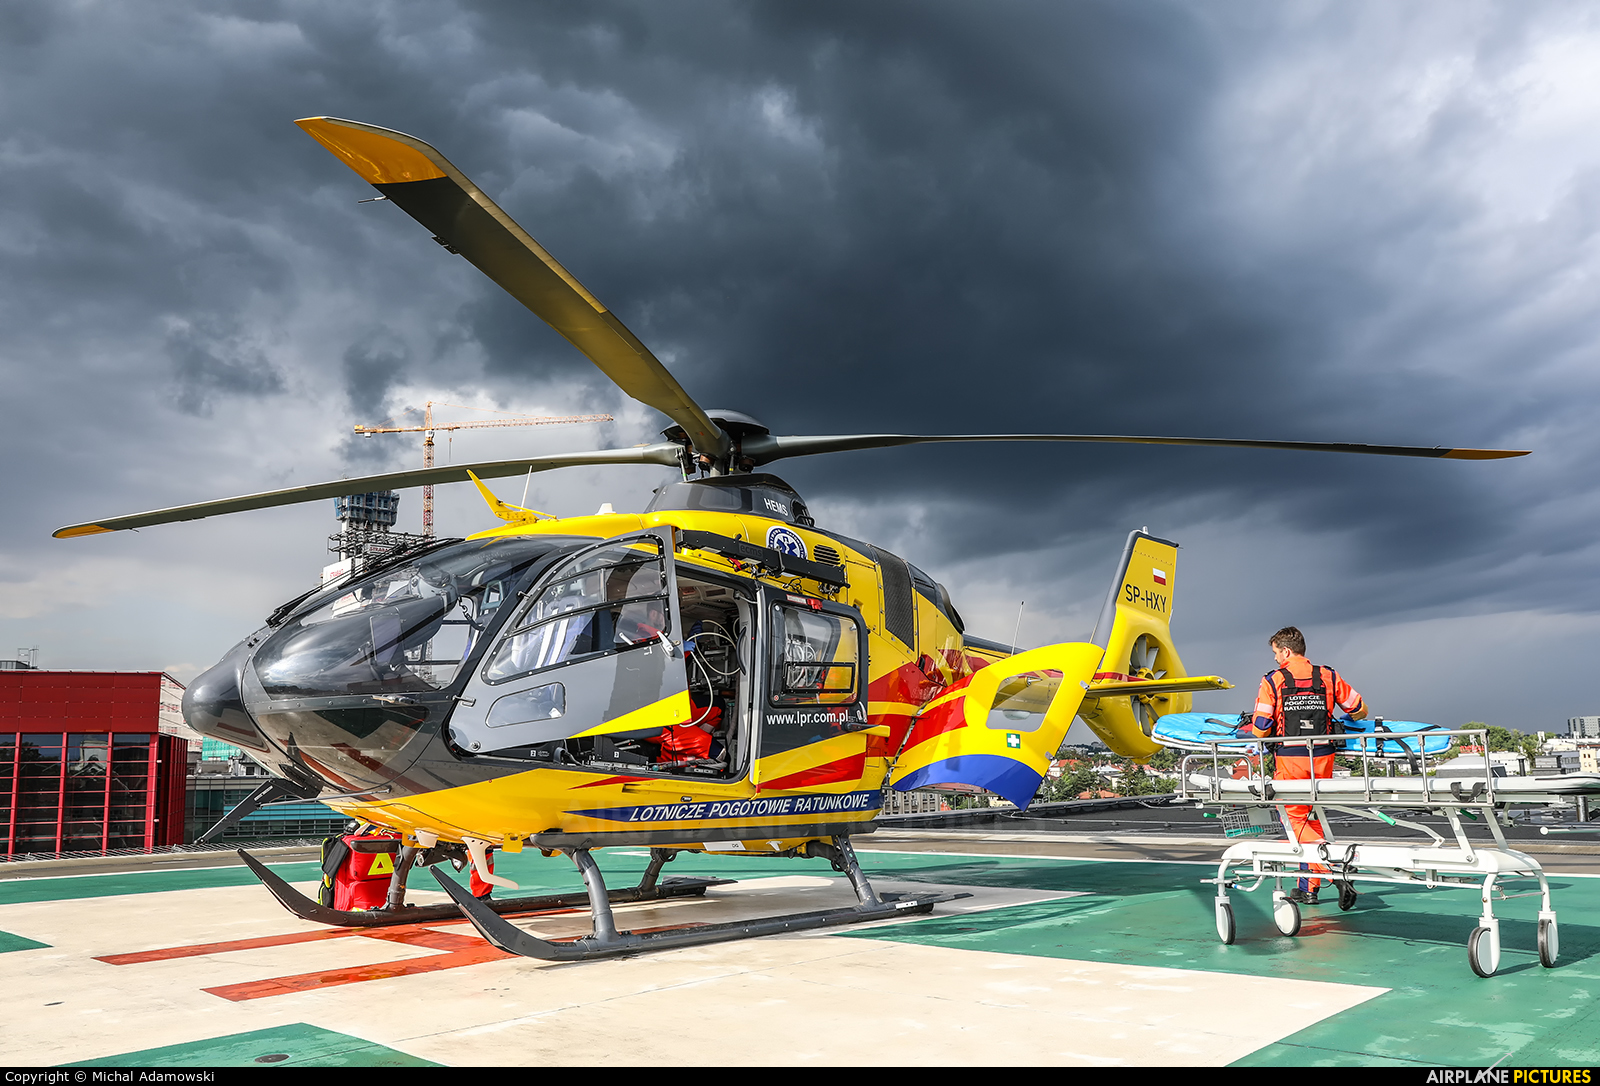 Polish Medical Air Rescue - Lotnicze Pogotowie Ratunkowe SP-HXY aircraft at Off Airport - Poland